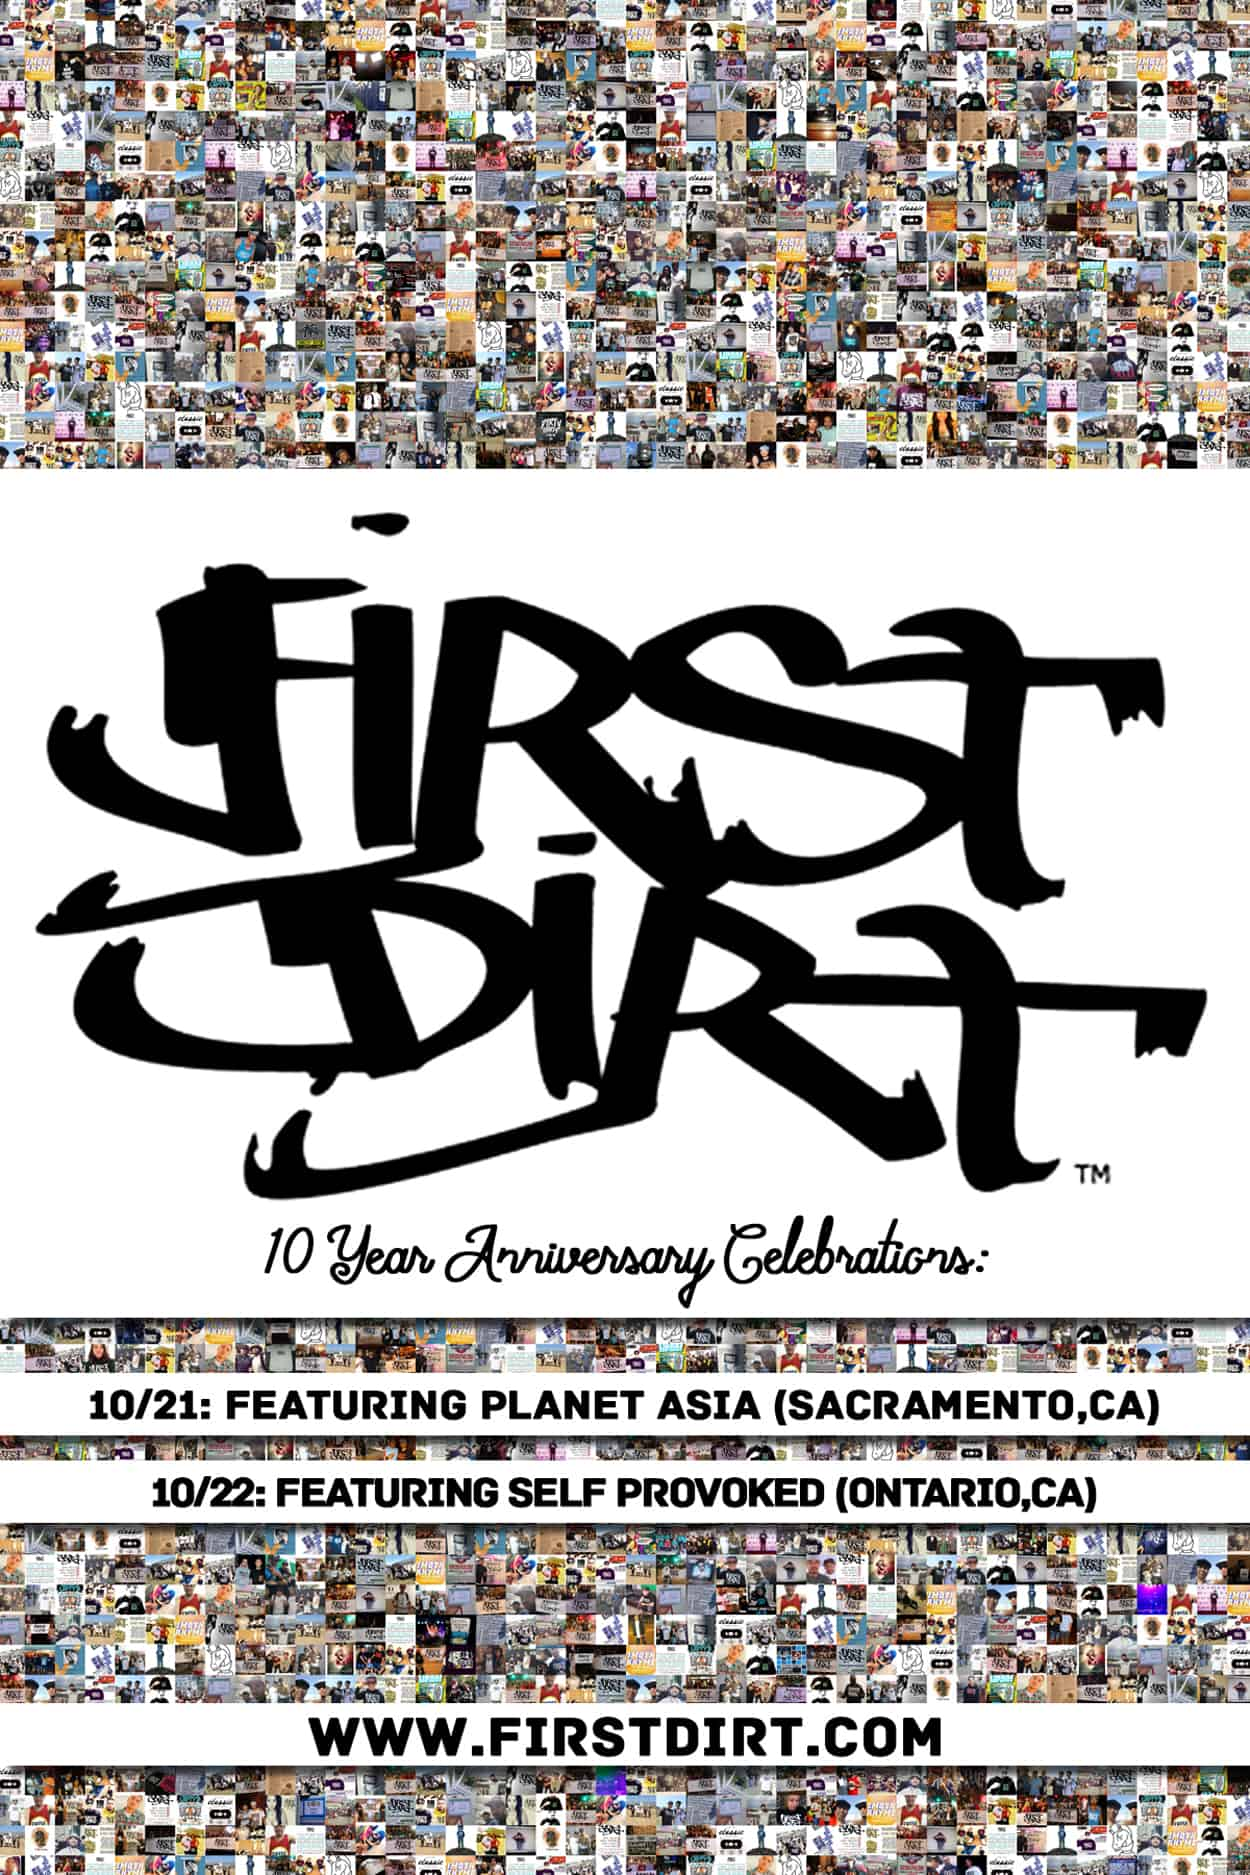 60 East - 10 Year Anniversary - Flyer Design